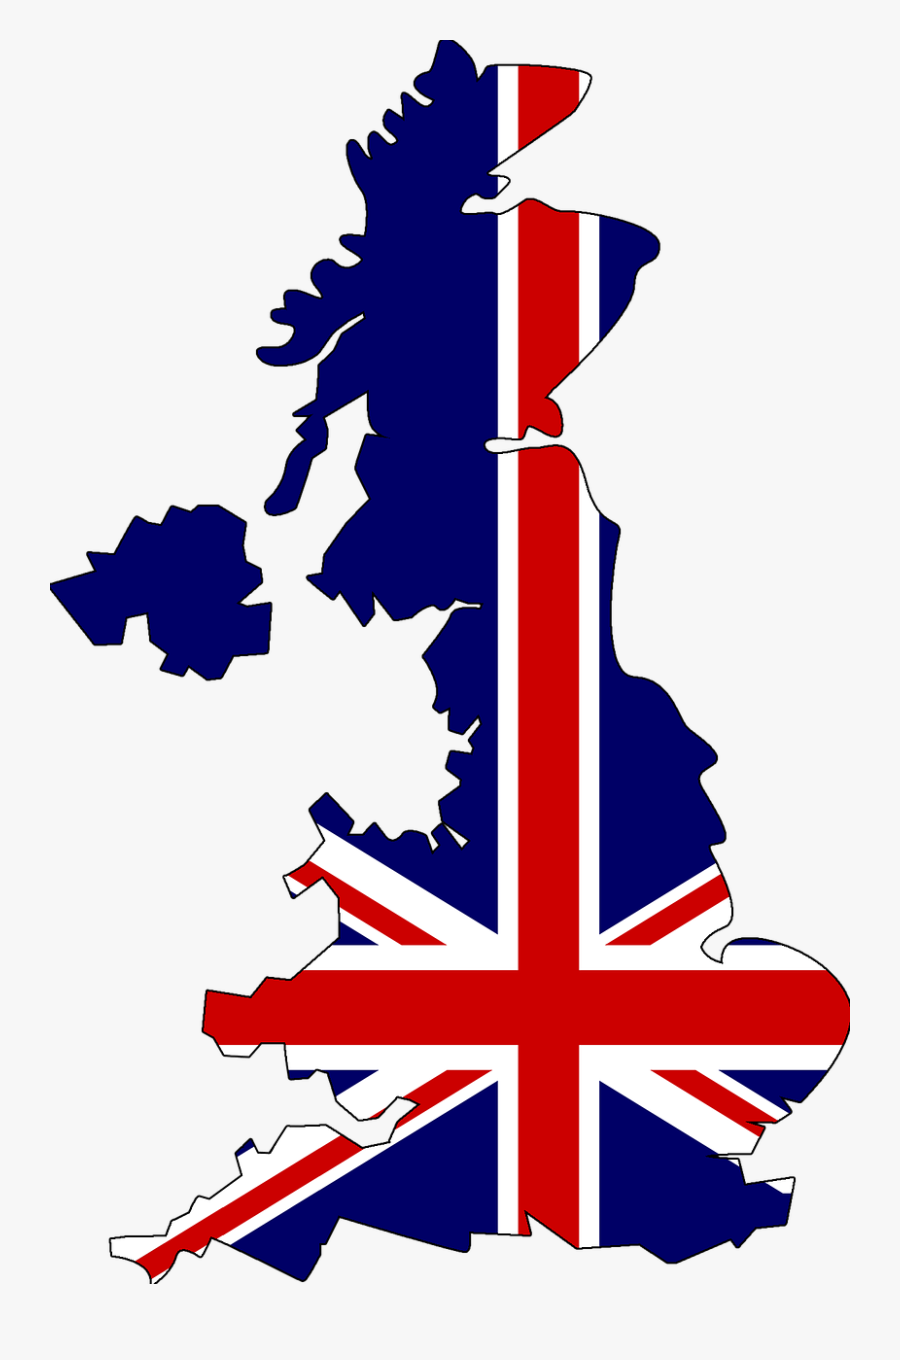 United Kingdom England Map Drawn Holiday Geography - United Kingdom Flag Map, Transparent Clipart